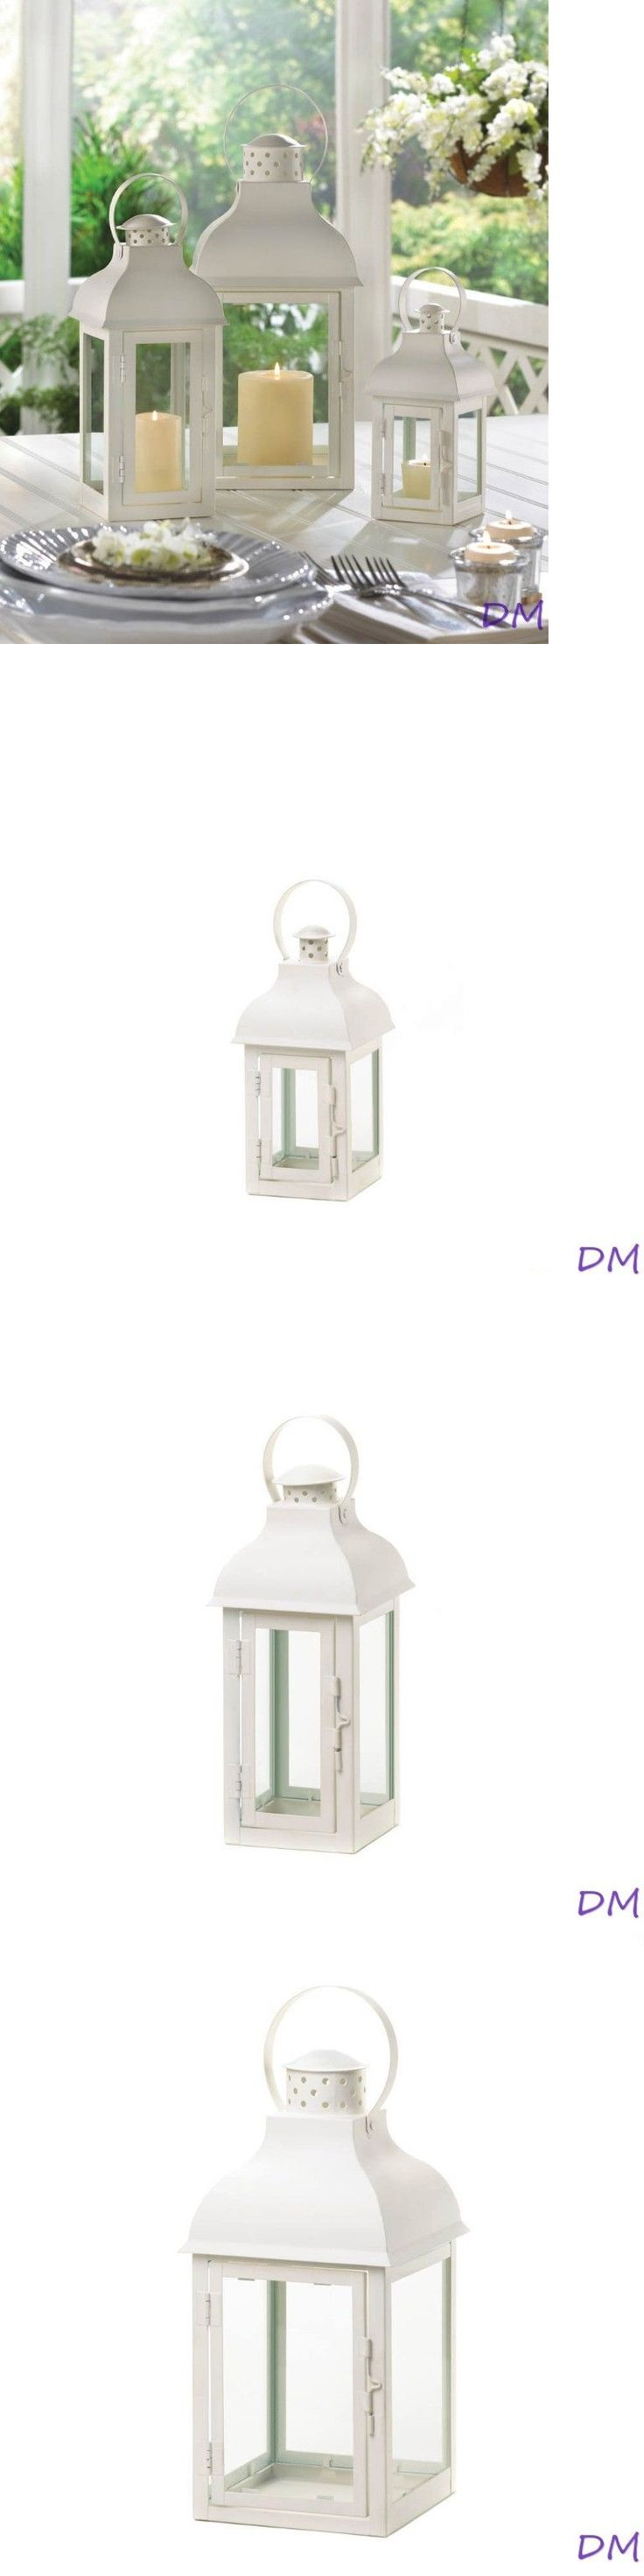 Candle Holders and Accessories 16102: Set Of 3 Elegant Soft White Gable Candle Lanterns Centerpieces W Doom Roof -> BUY IT NOW ONLY: $59.95 on eBay!